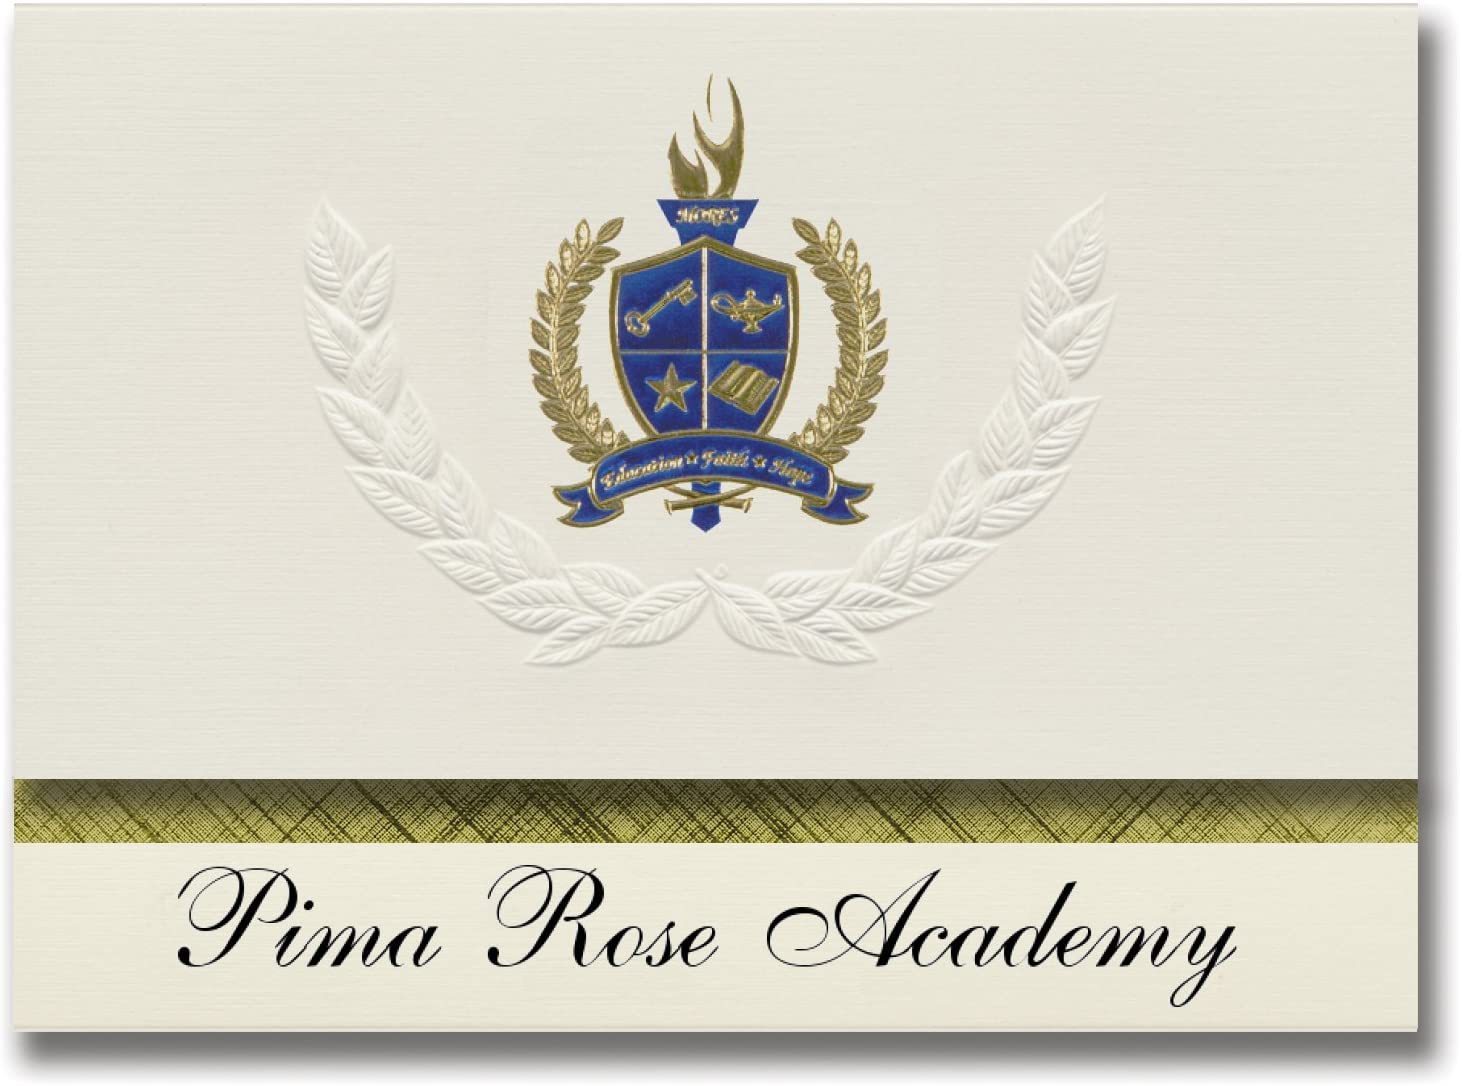 Signature Announcements Pima Rose Academy (Tucson, AZ) Graduation Announcements, Presidential style, Elite package of 25 with Gold & Blue Metallic Foil seal